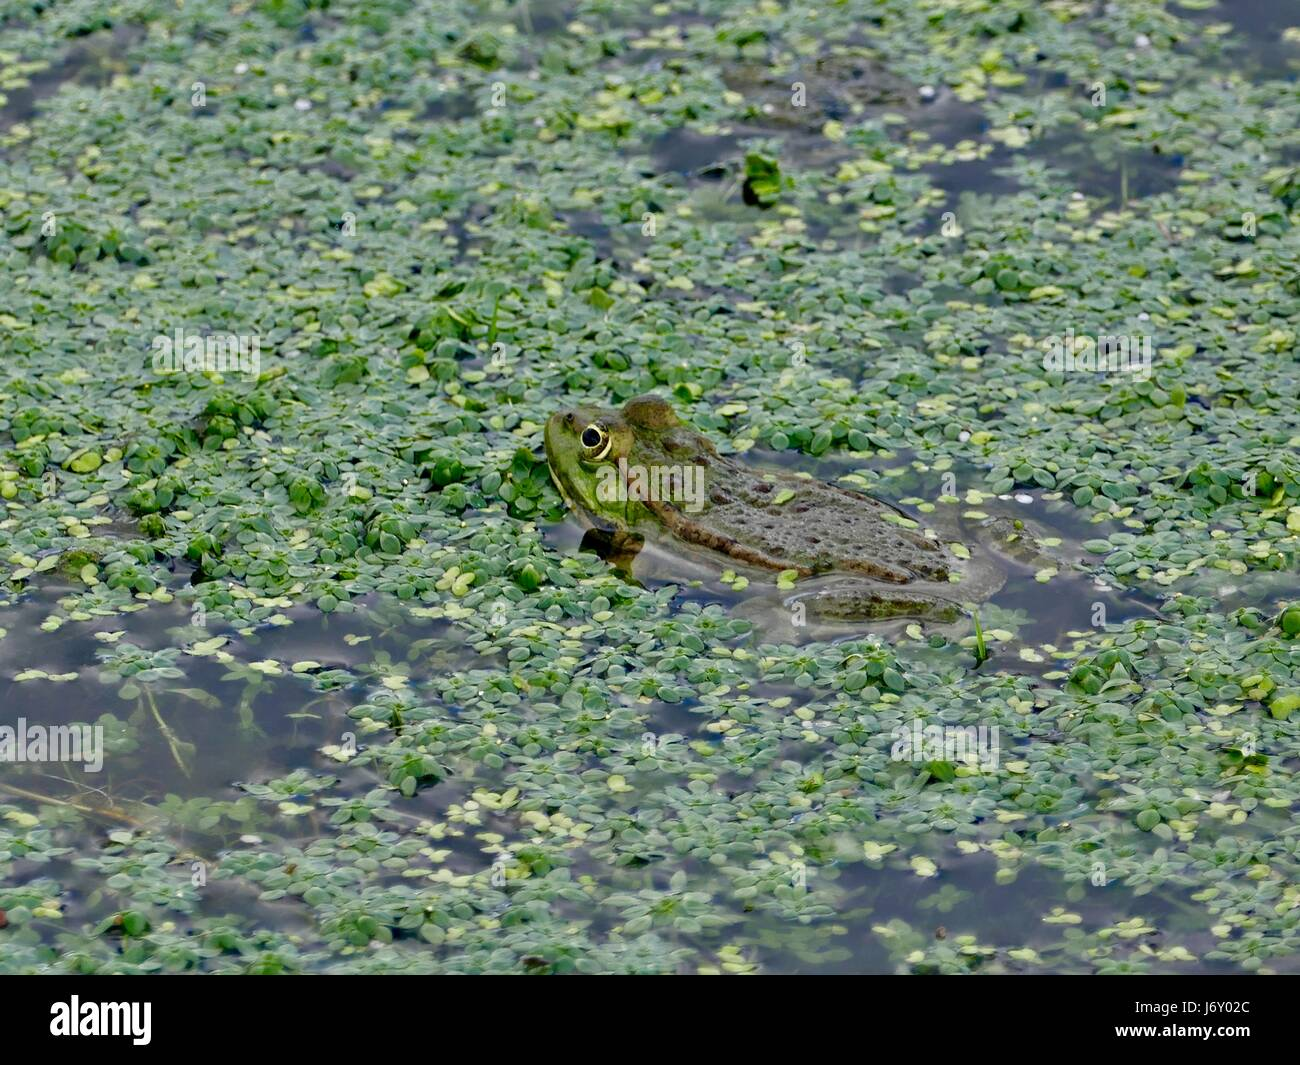 Green European edible frog surrounded by water and green vegetation. Bayeux, France - Stock Image